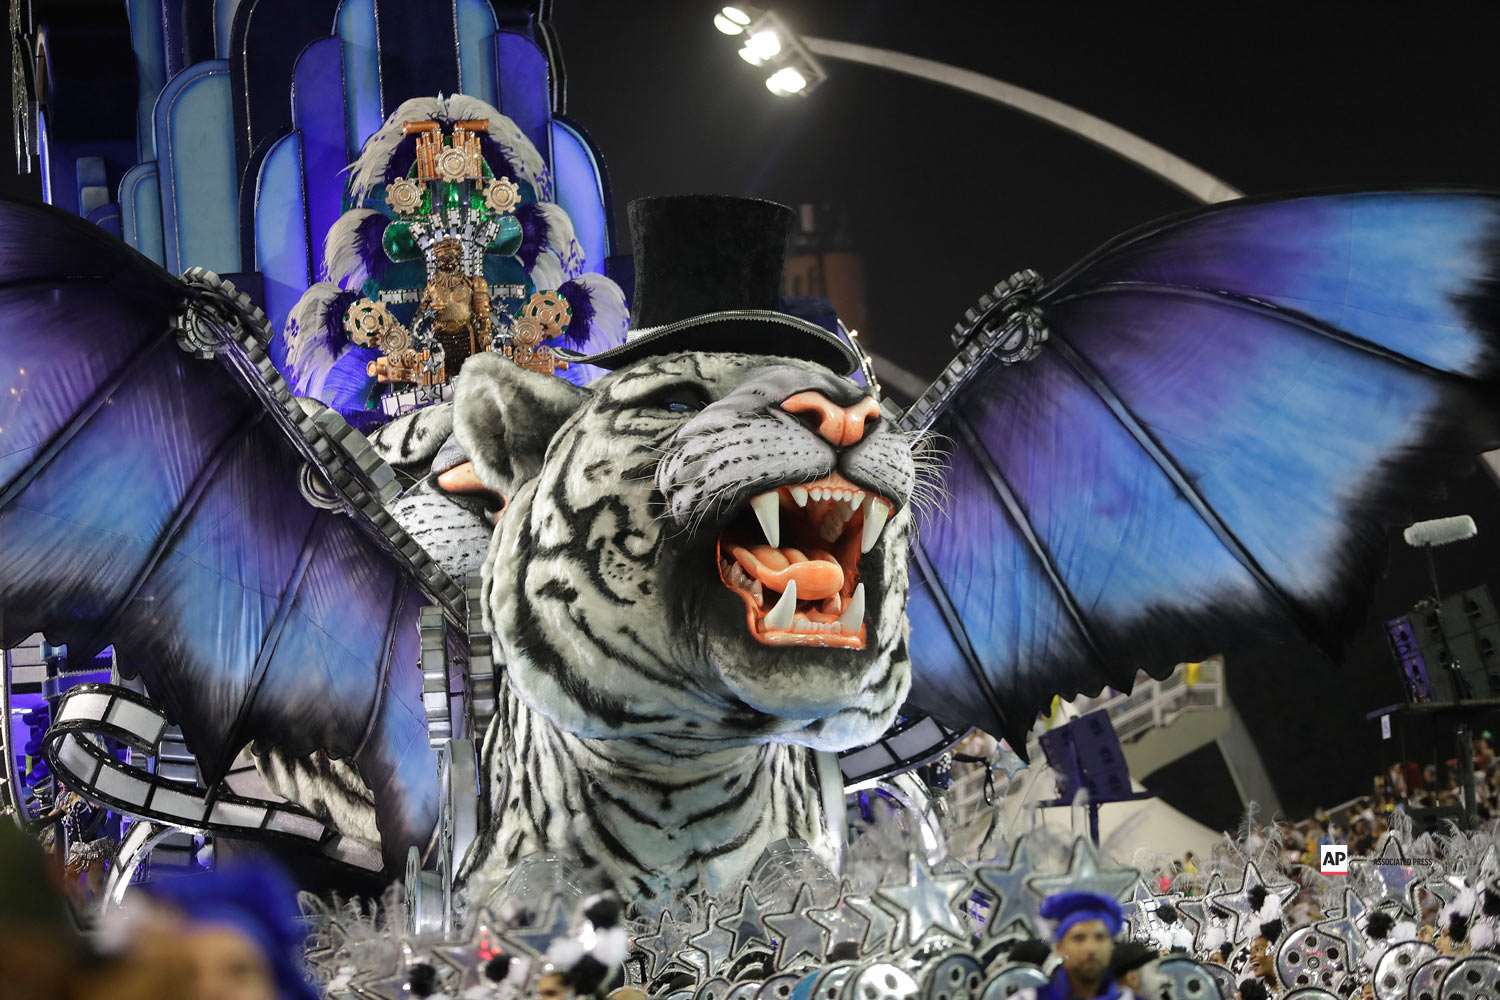 Dancers from the Imperio de Casa Verde samba school perform on a float during a carnival parade in Sao Paulo, Brazil, Saturday, March 2, 2019. (AP Photo/Andre Penner)